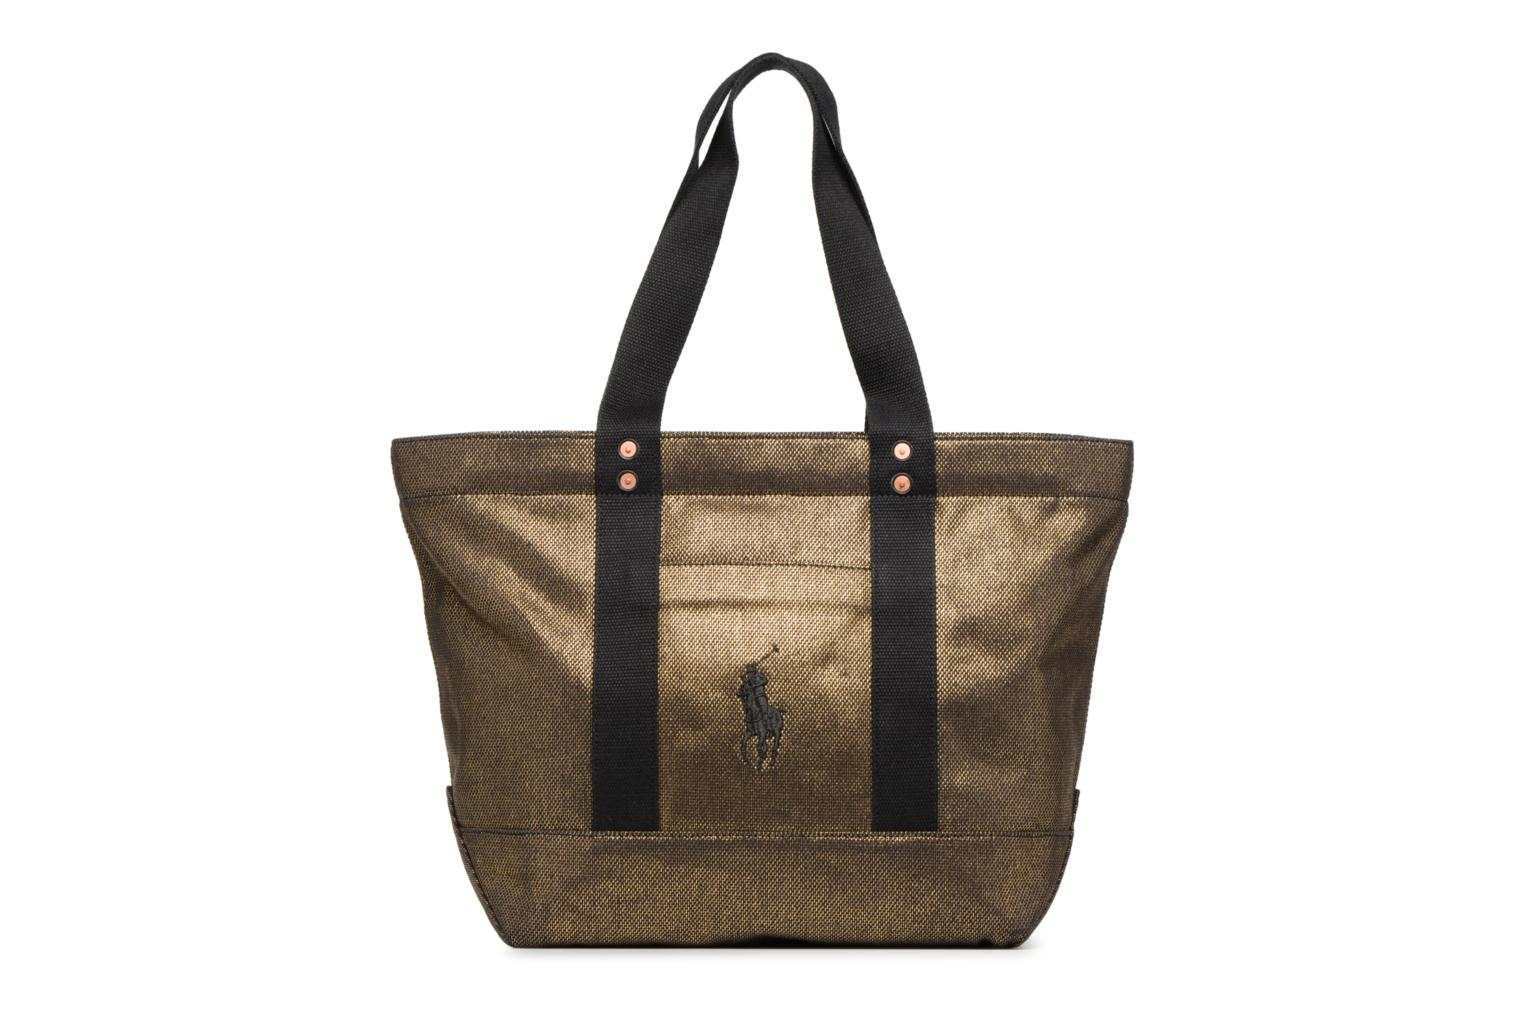 PP TOTE CANVAS